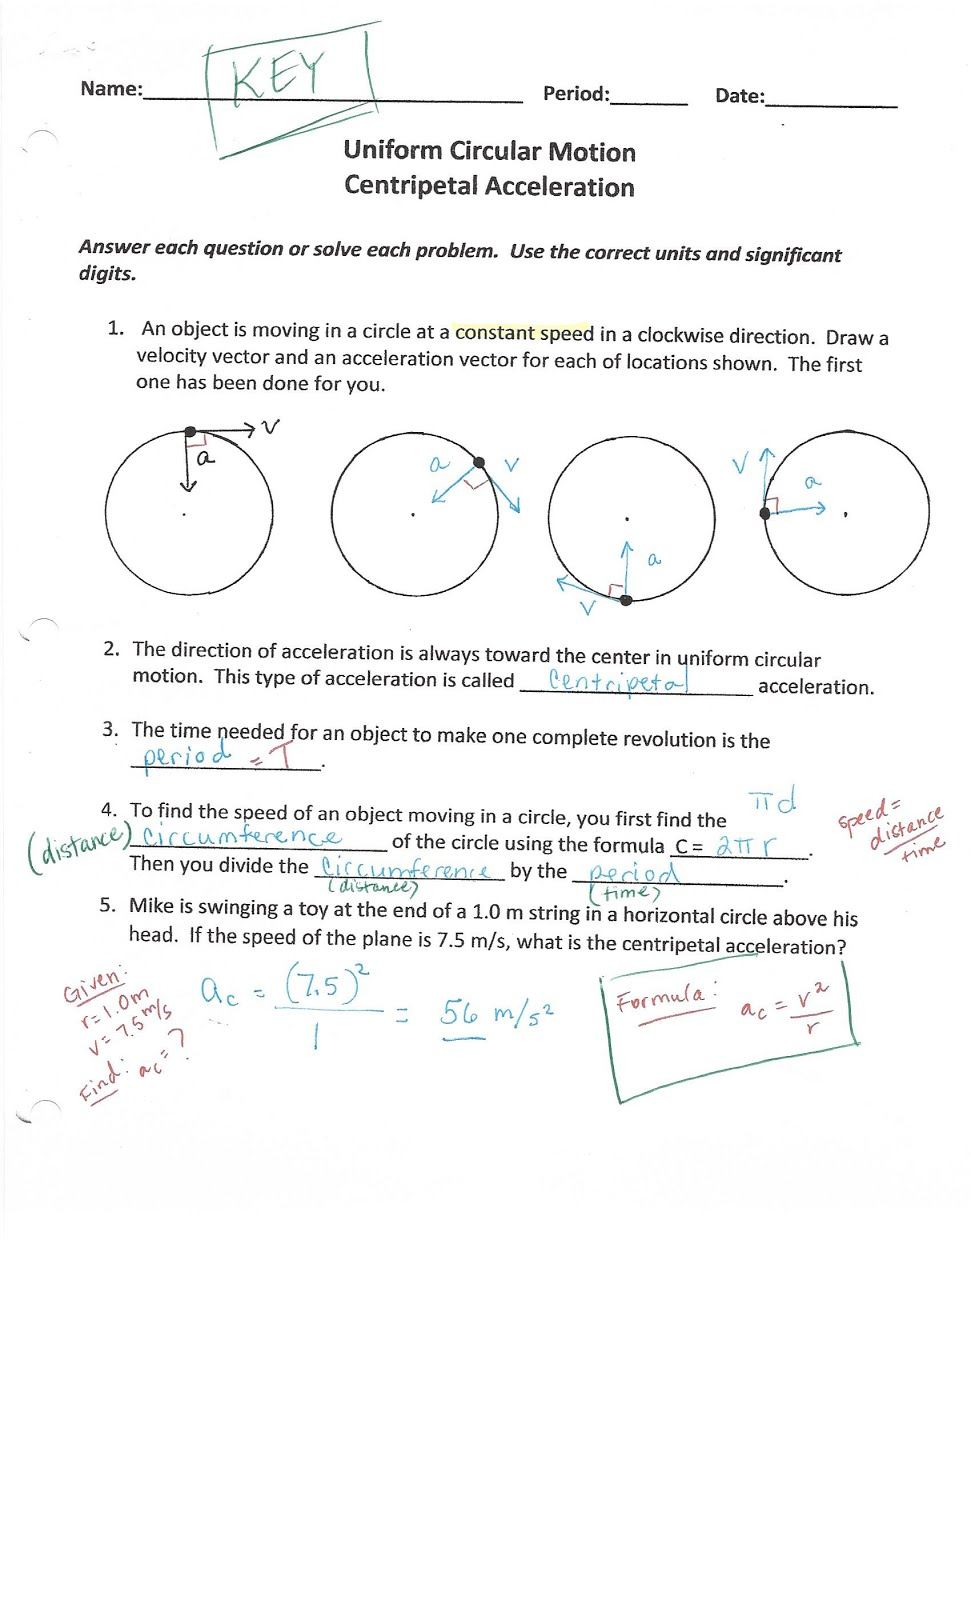 Worksheets Acceleration Worksheet With Answers physics with coach t centripetal acceleration universal gravitation and laws worksheet answers